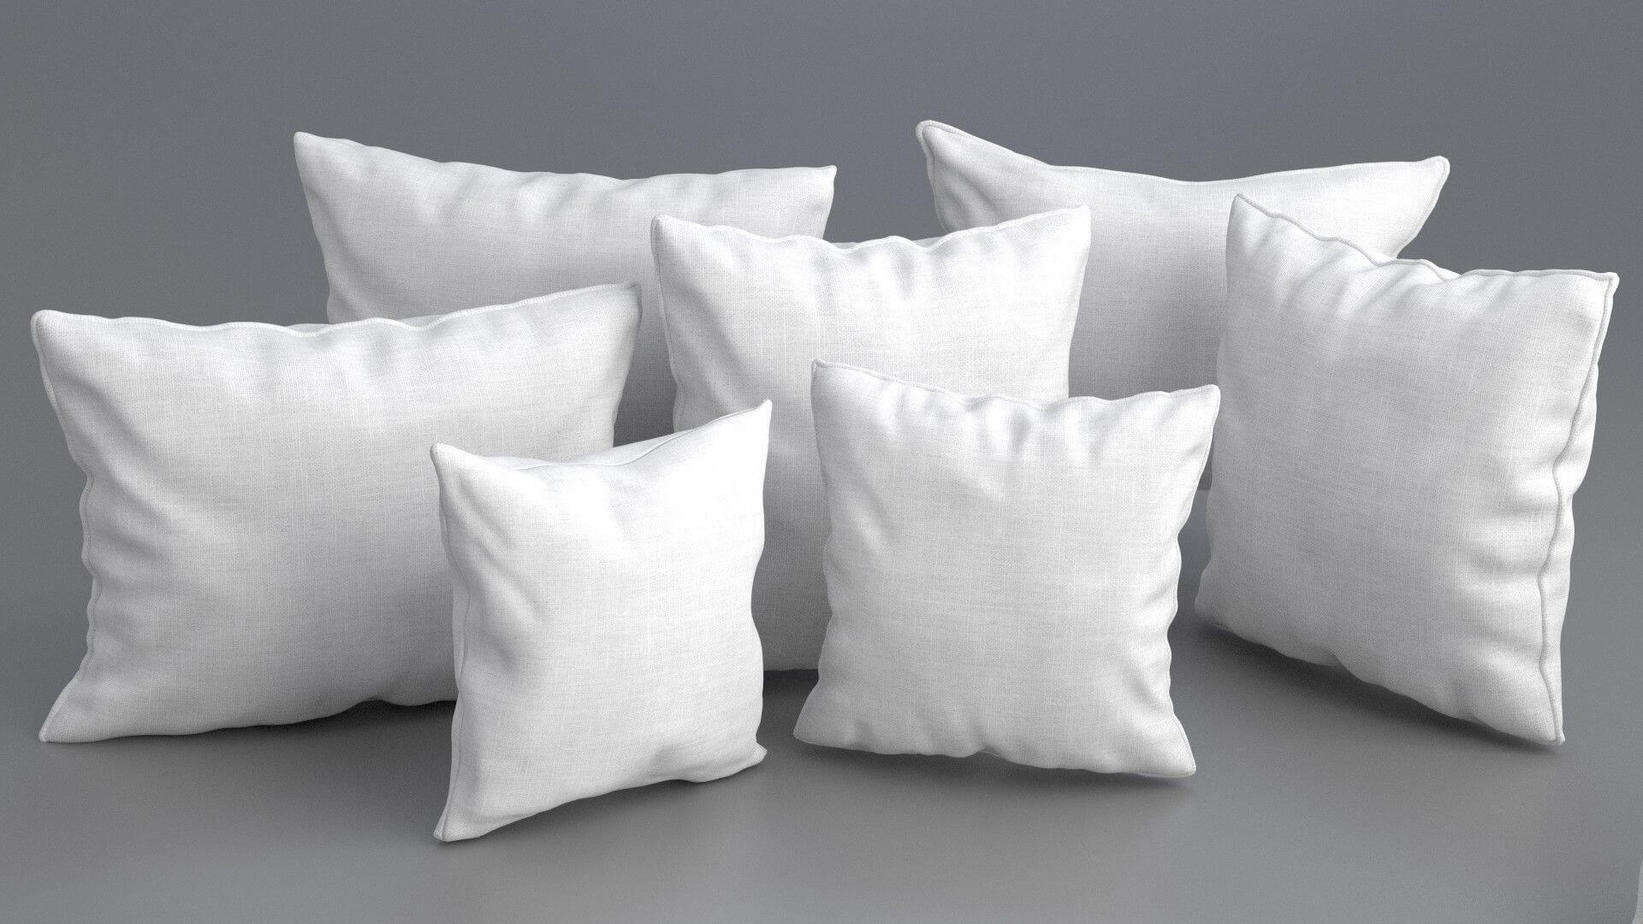 These Special Pillows Support Relaxation In All Aspects of Your Life